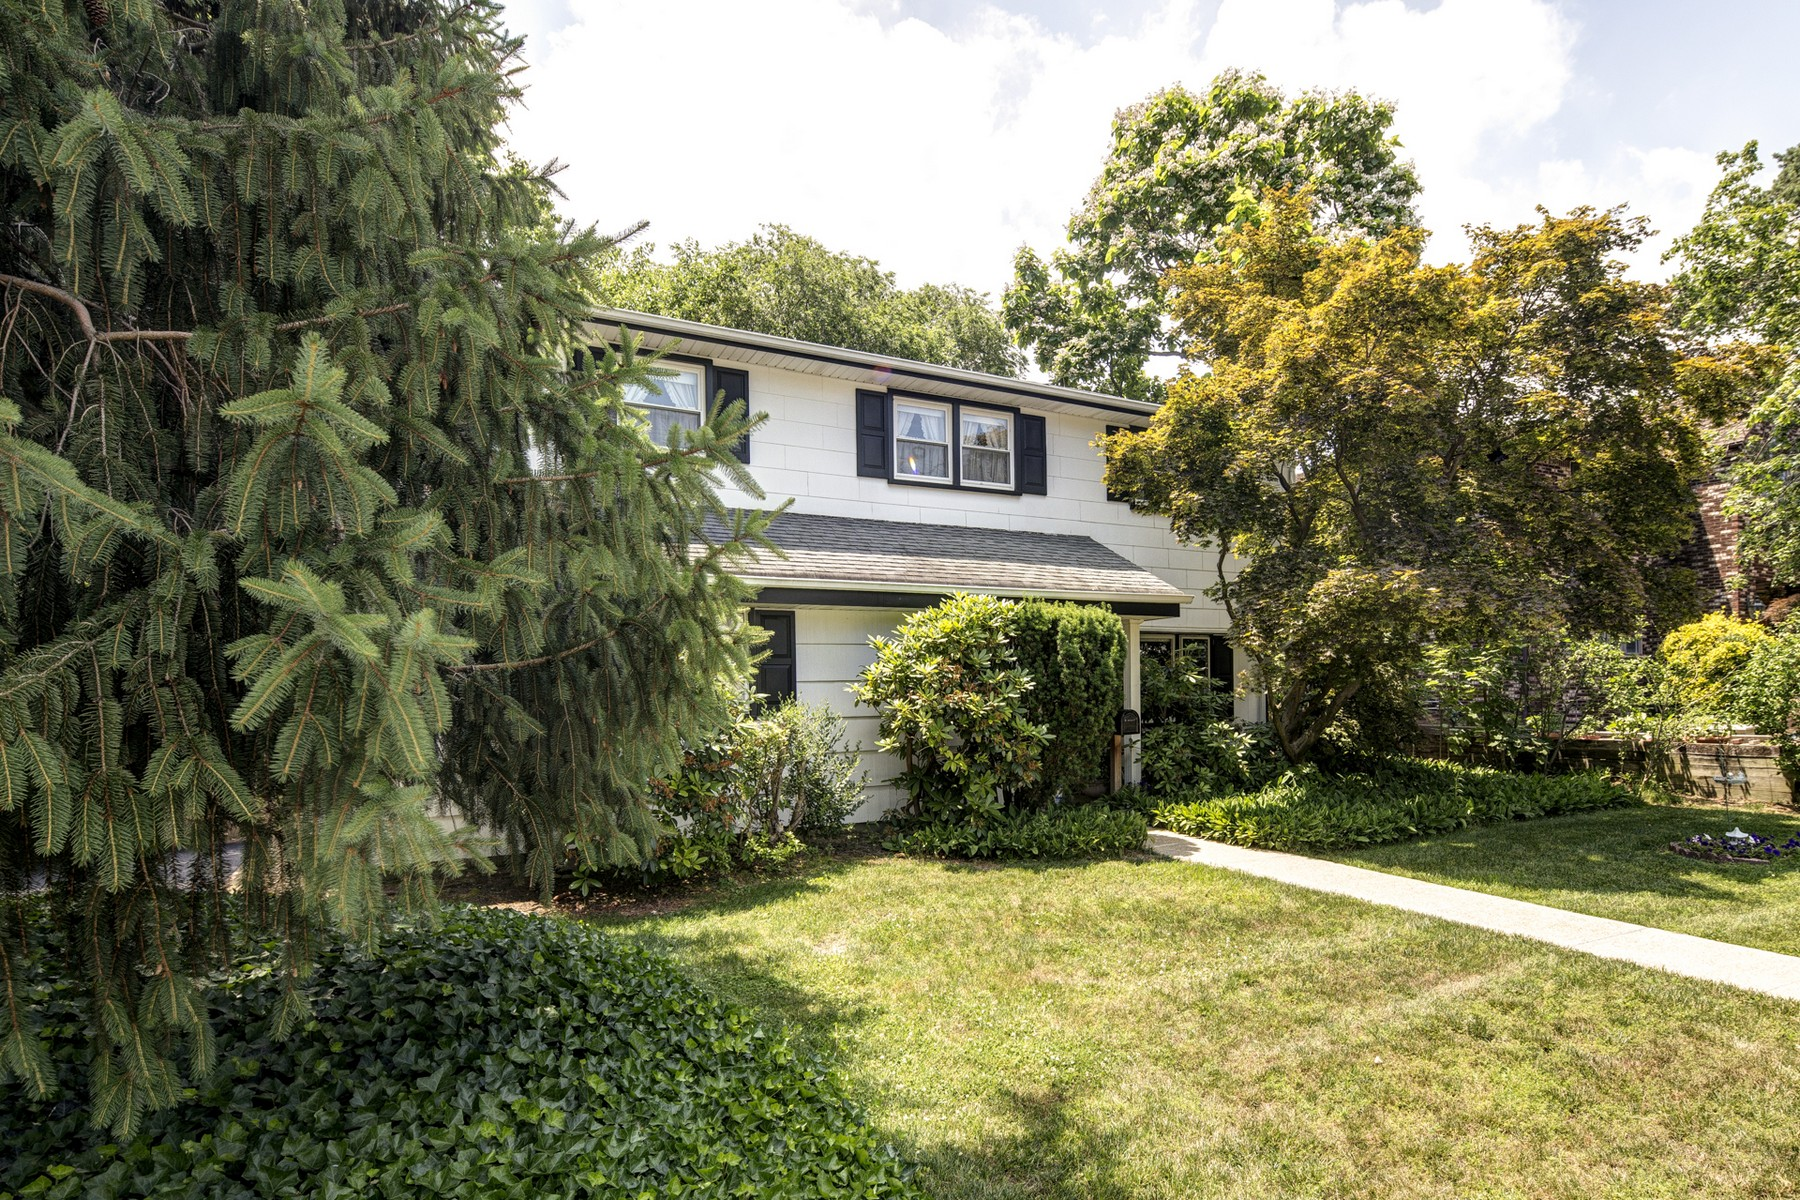 Single Family Home for Sale at 654 Beers Street, Hazlet 654 Beers St. Hazlet, New Jersey, 07730 United States